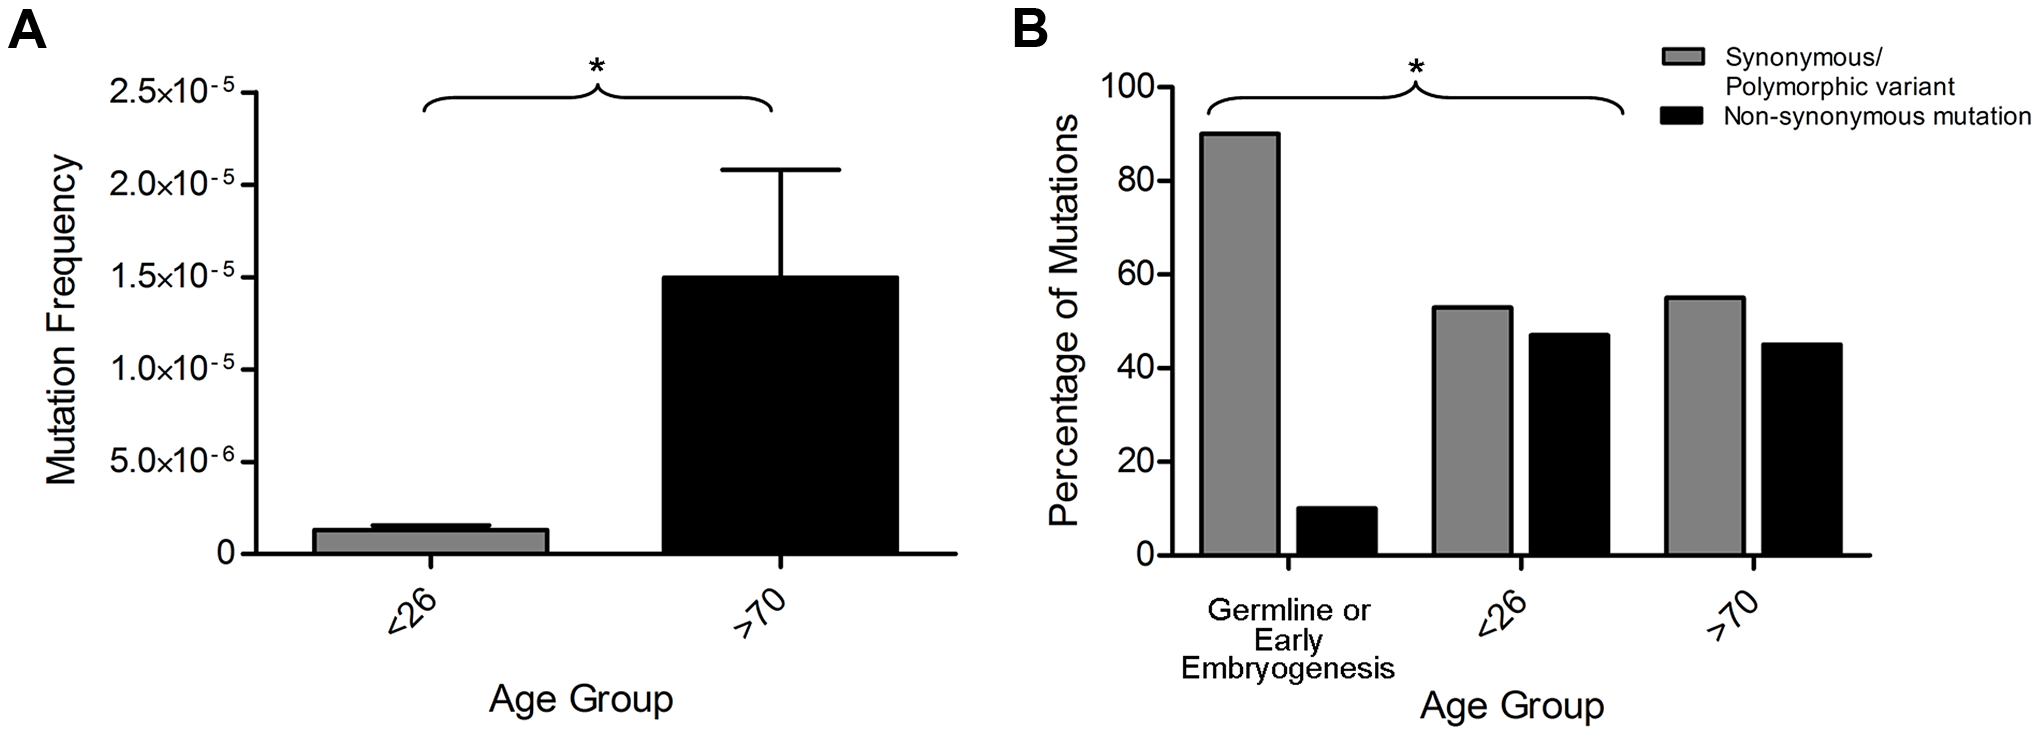 Exclusion of mitochondrial DNA (mtDNA) mutations occurring in the germline or in early embryogenesis.